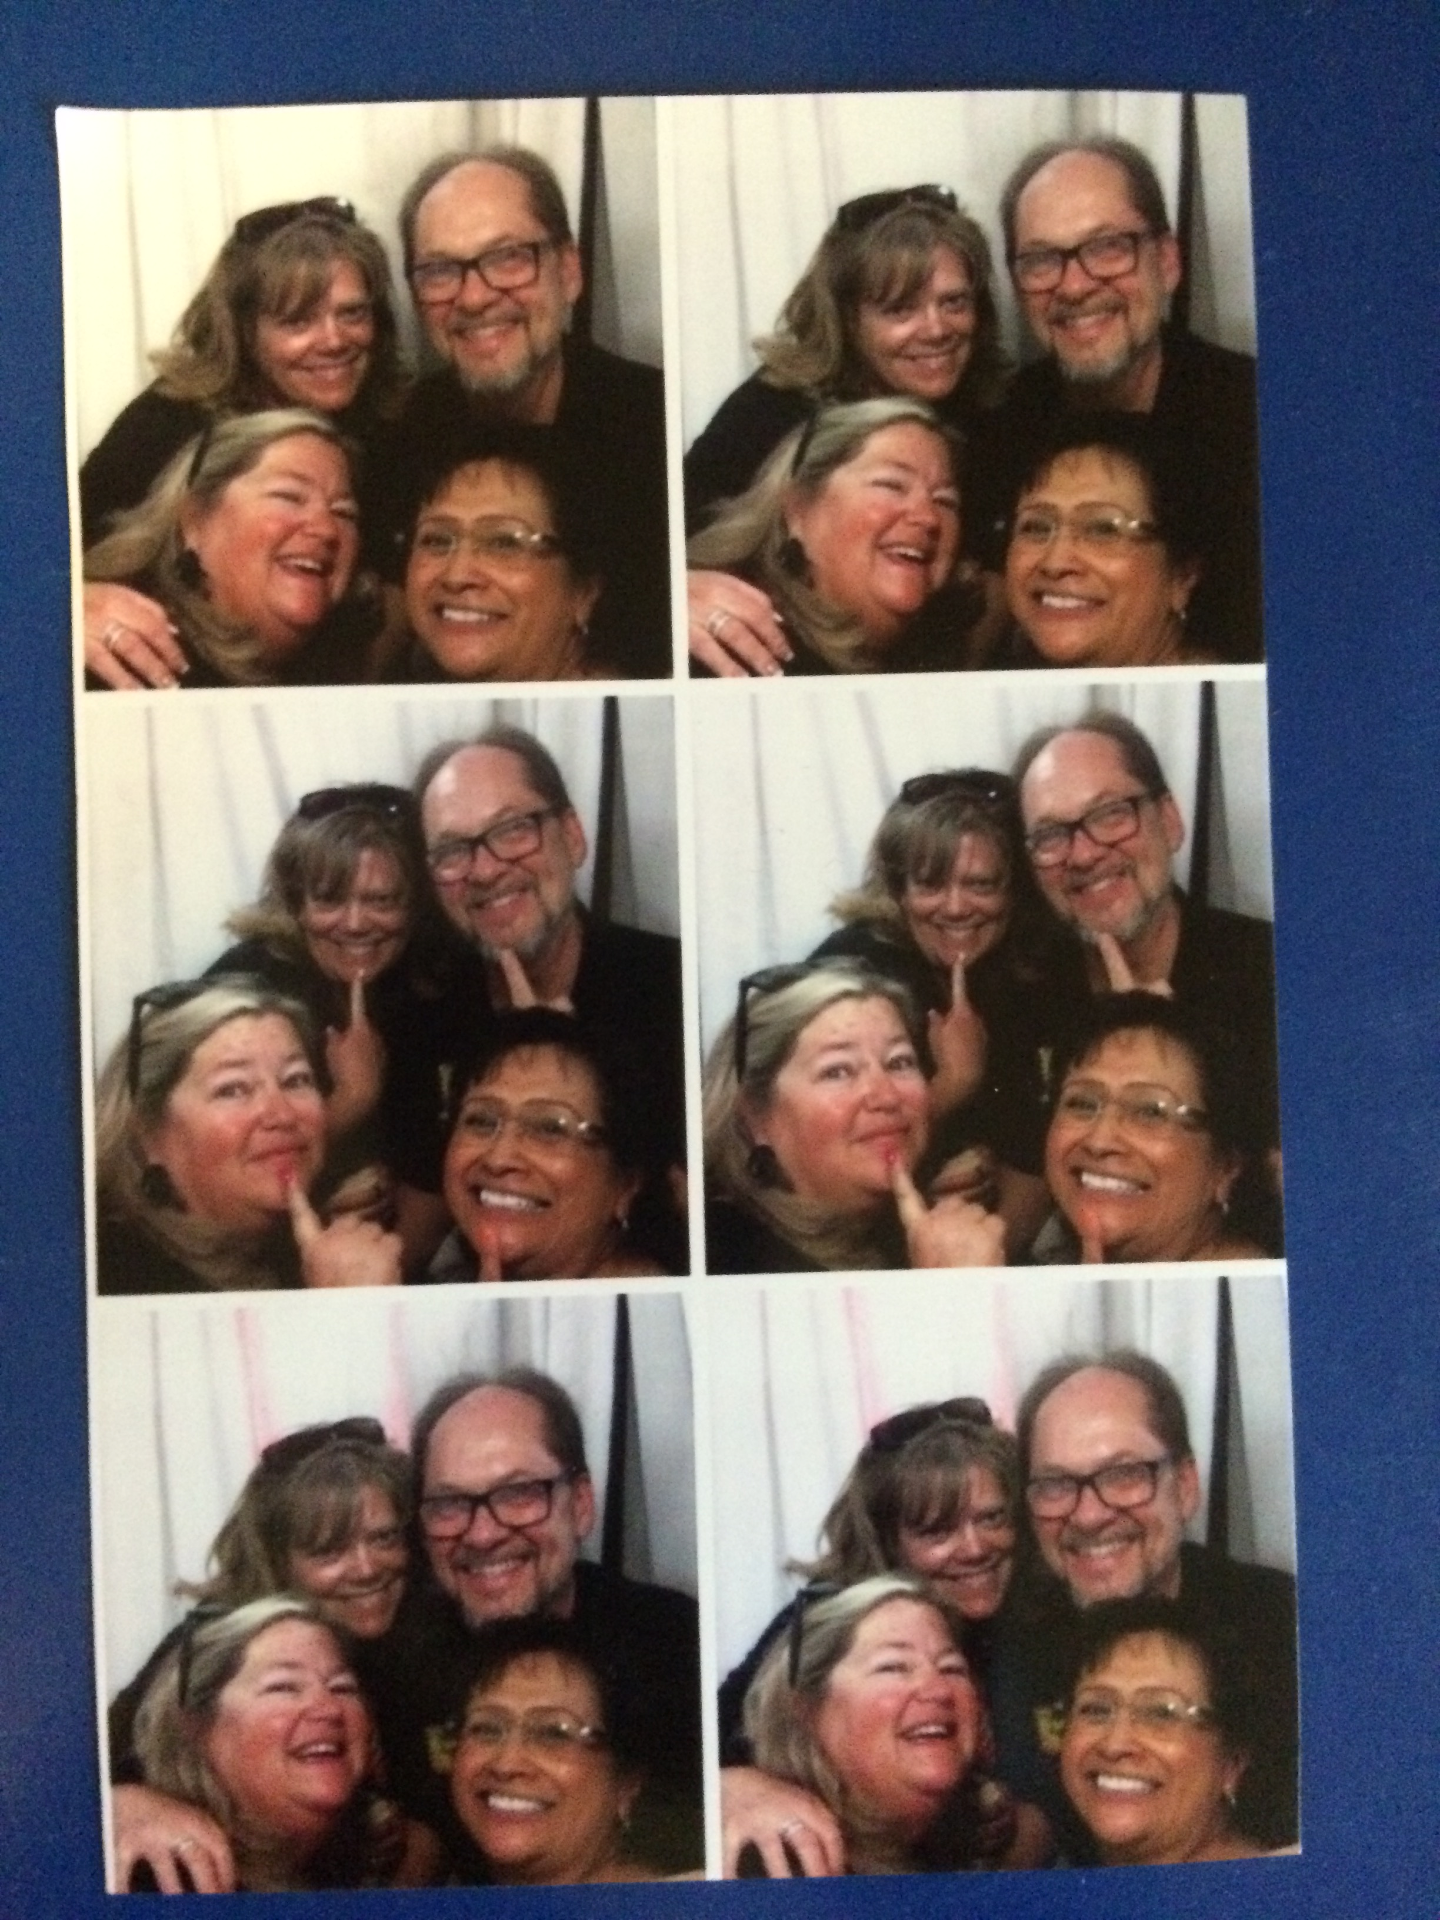 Its a Gas Photo Booth!